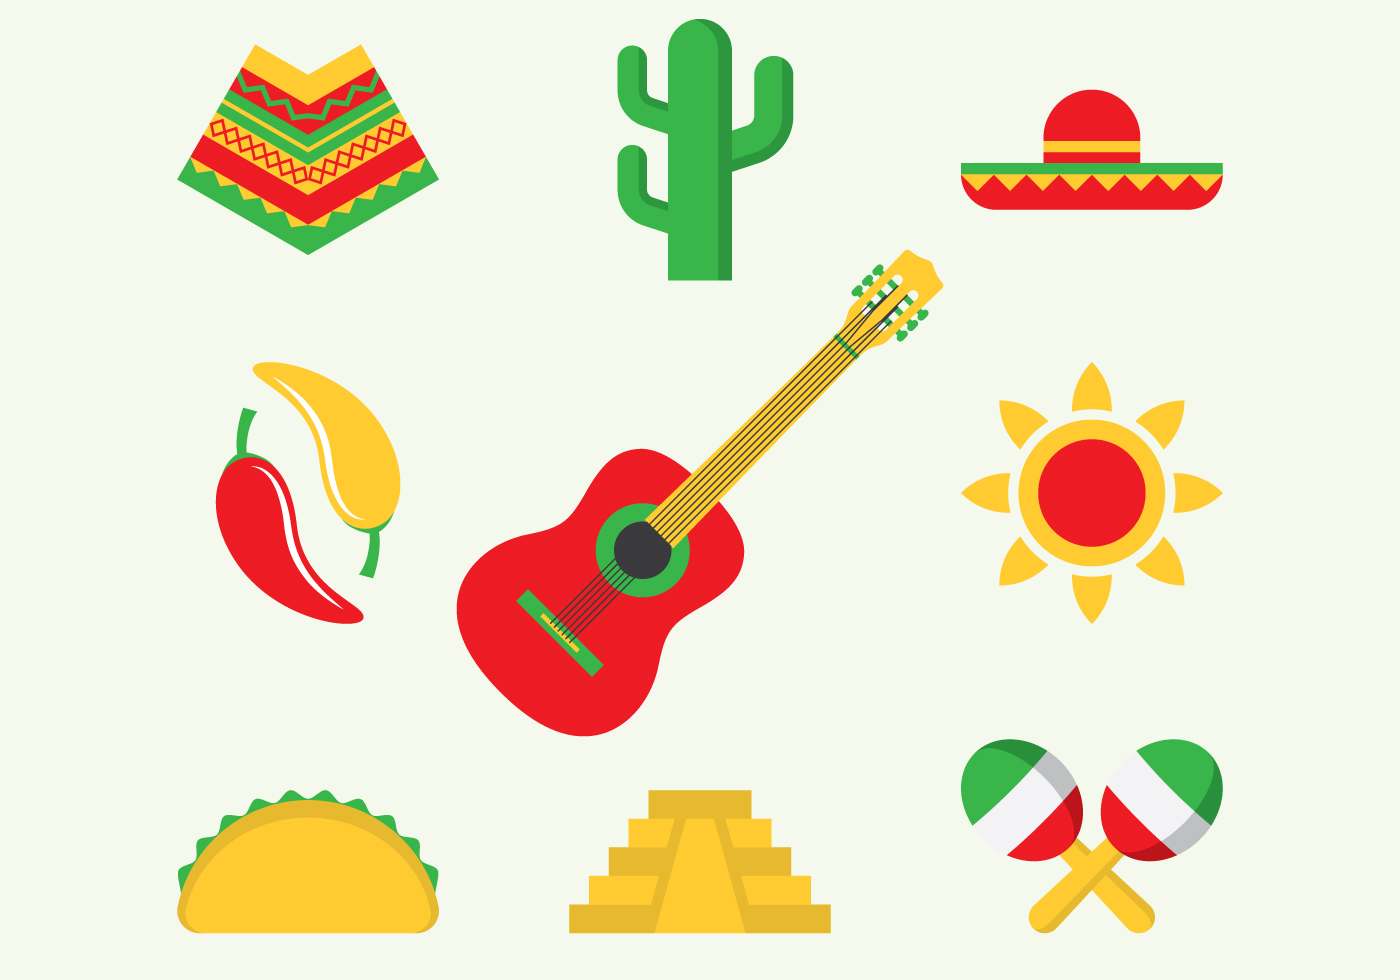 Icono Mapa Mexico Png: Download Free Vector Art, Stock Graphics